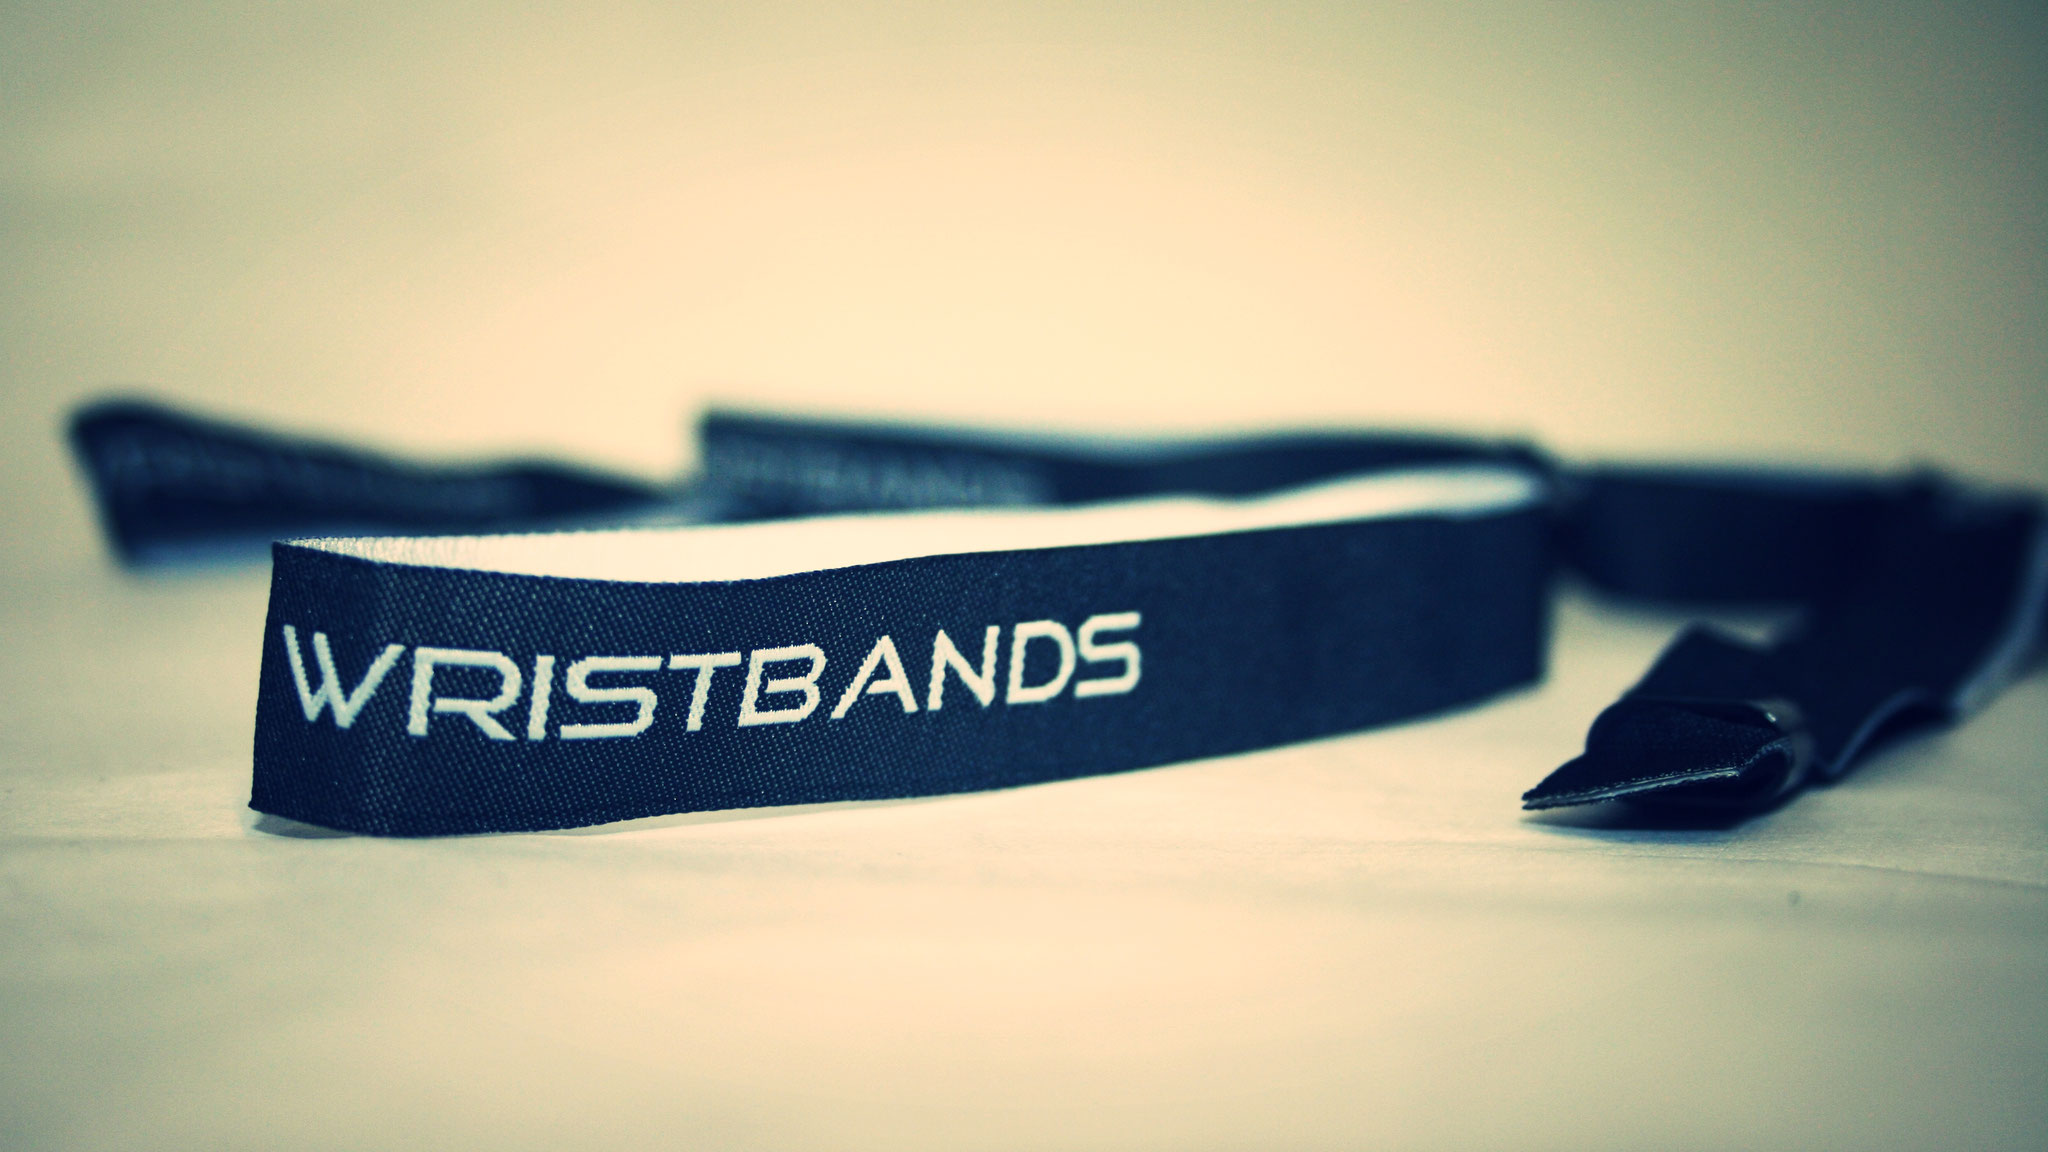 The must have band for crowd control, brand awareness and promotion